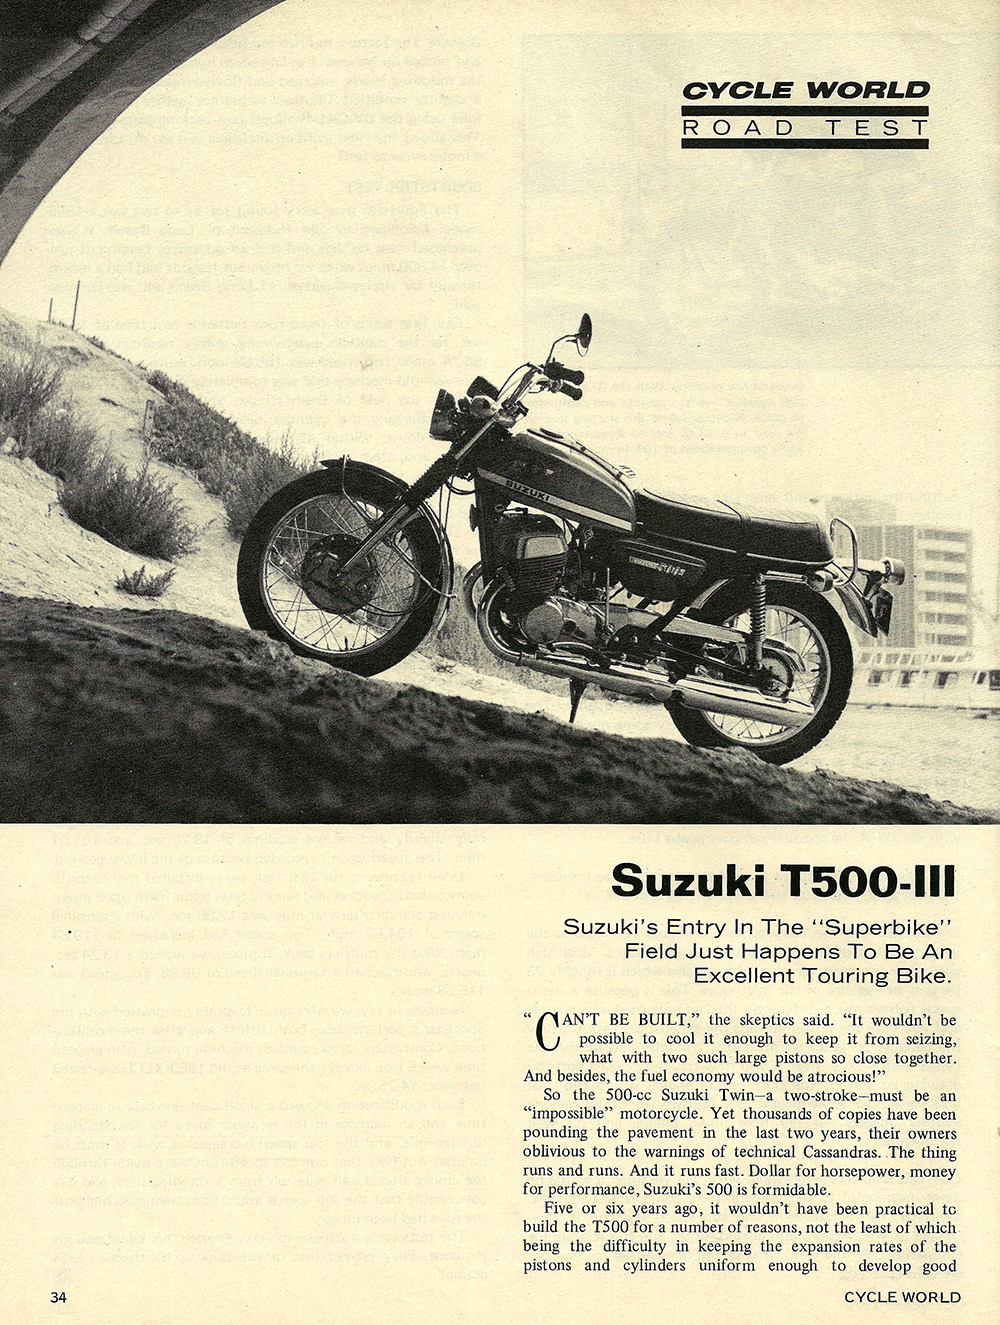 1970 Suzuki T500 III road test 01.jpg